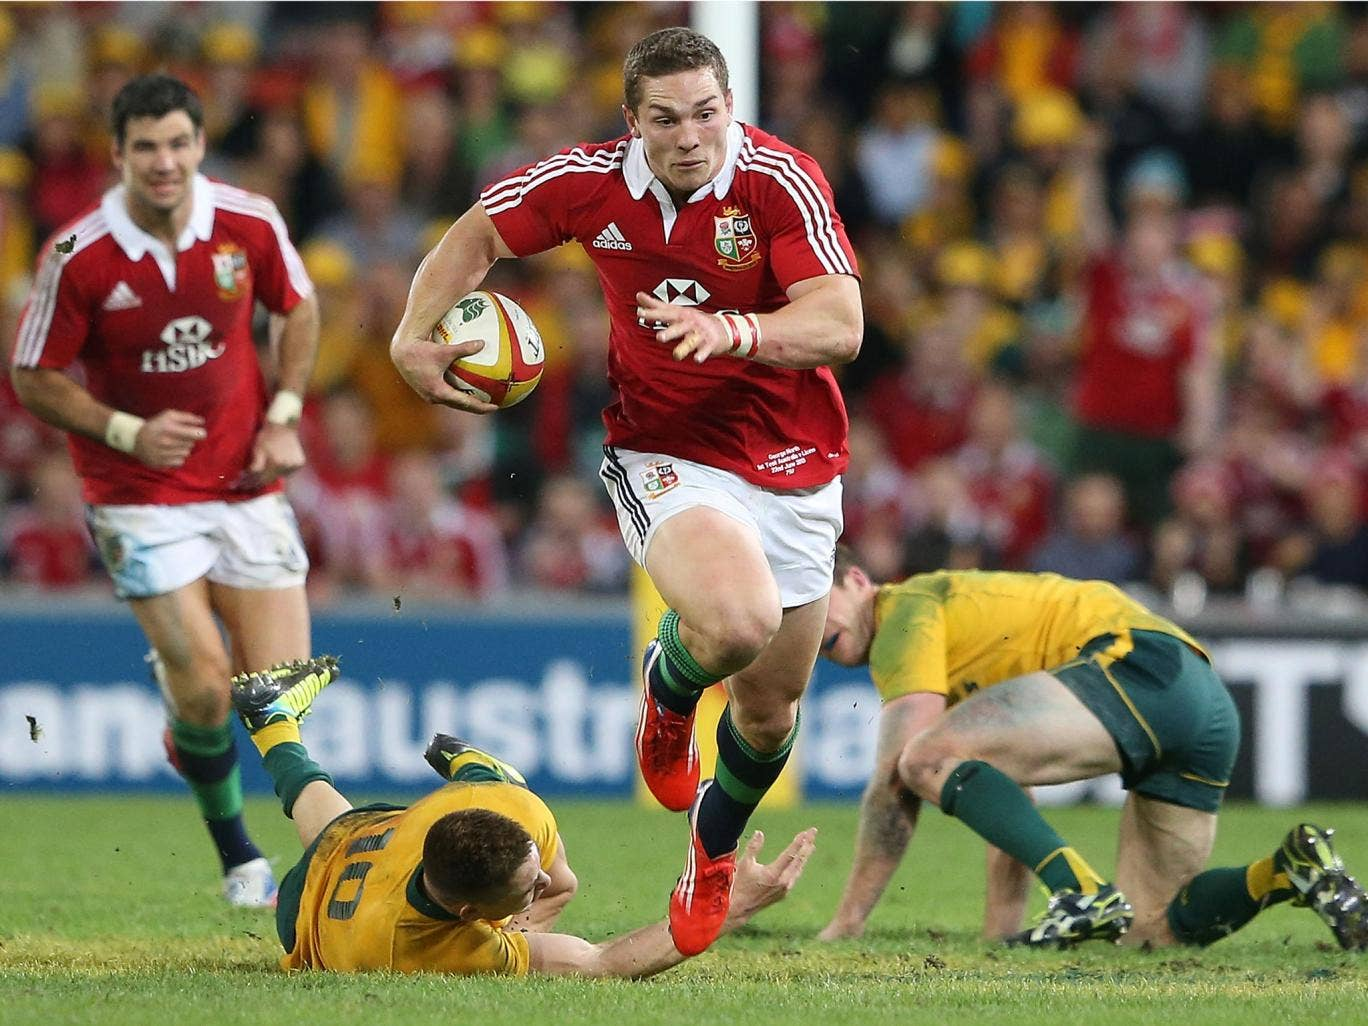 George North bursts through the Australian defence to score for the British and Irish Lions